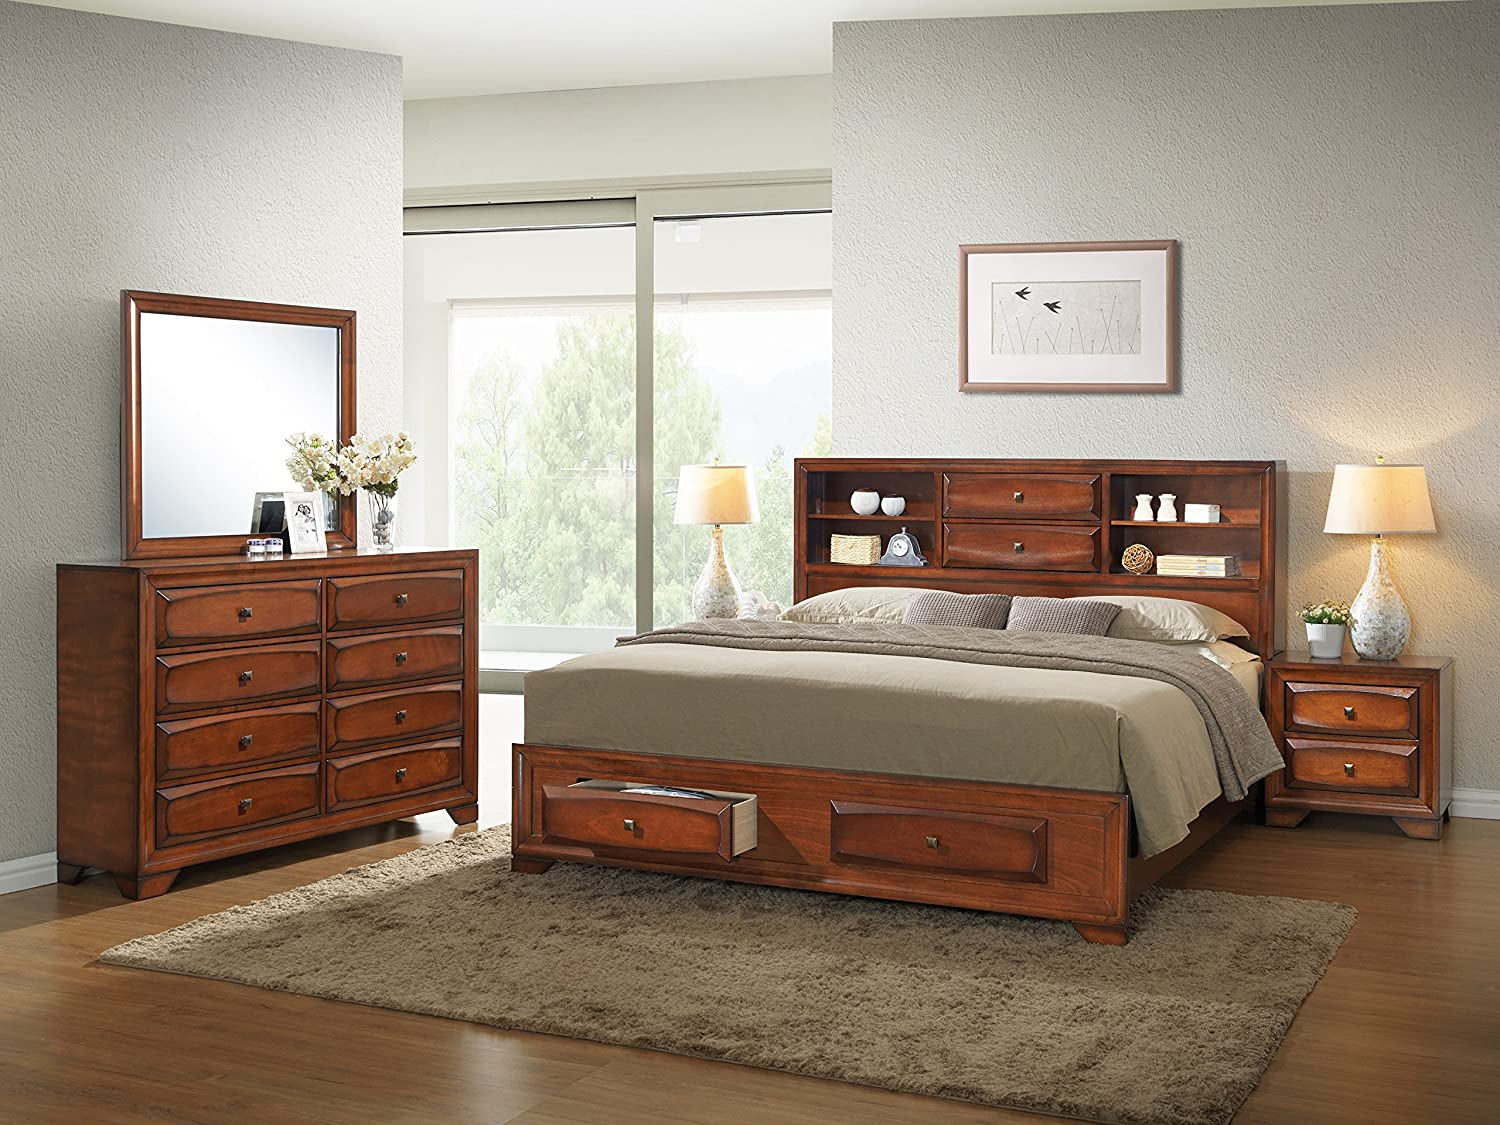 Amazon com roundhill furniture asger antique oak finish wood bed room set king storage bed dresser mirror 2 night stands kitchen dining